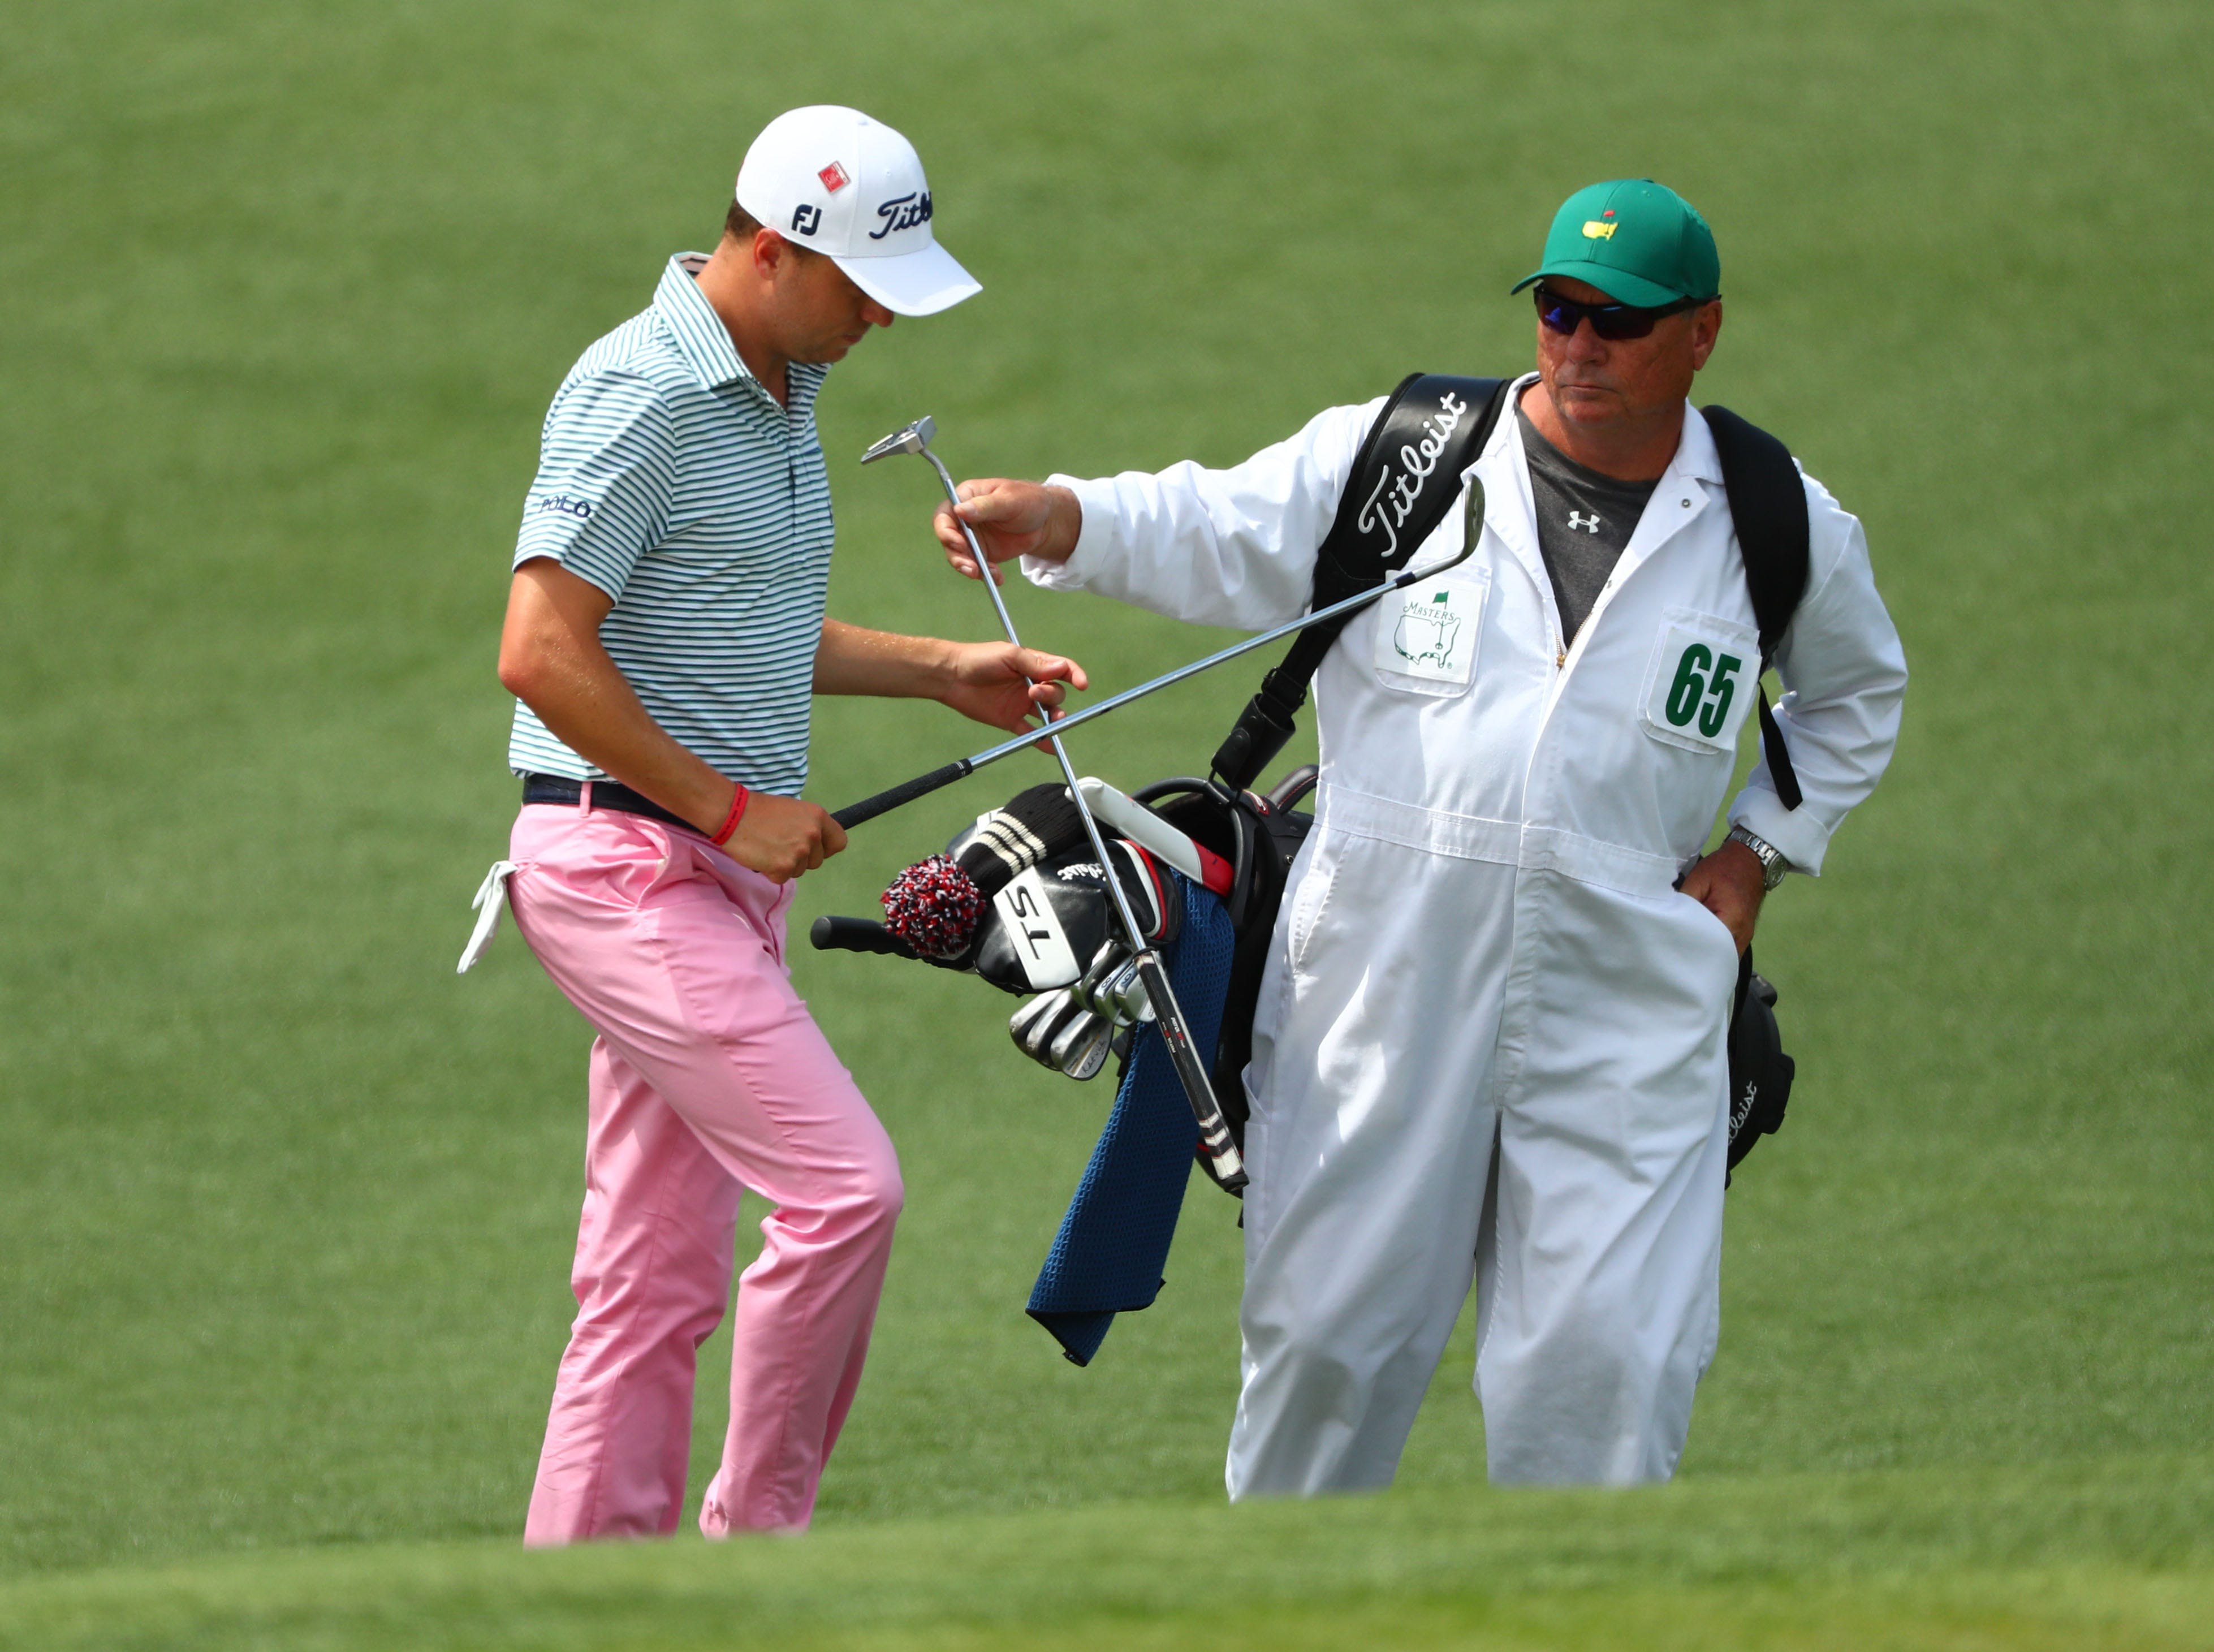 Justin Thomas exchanges clubs with caddie Jimmy Johnson on the second green during the first round of the Masters.